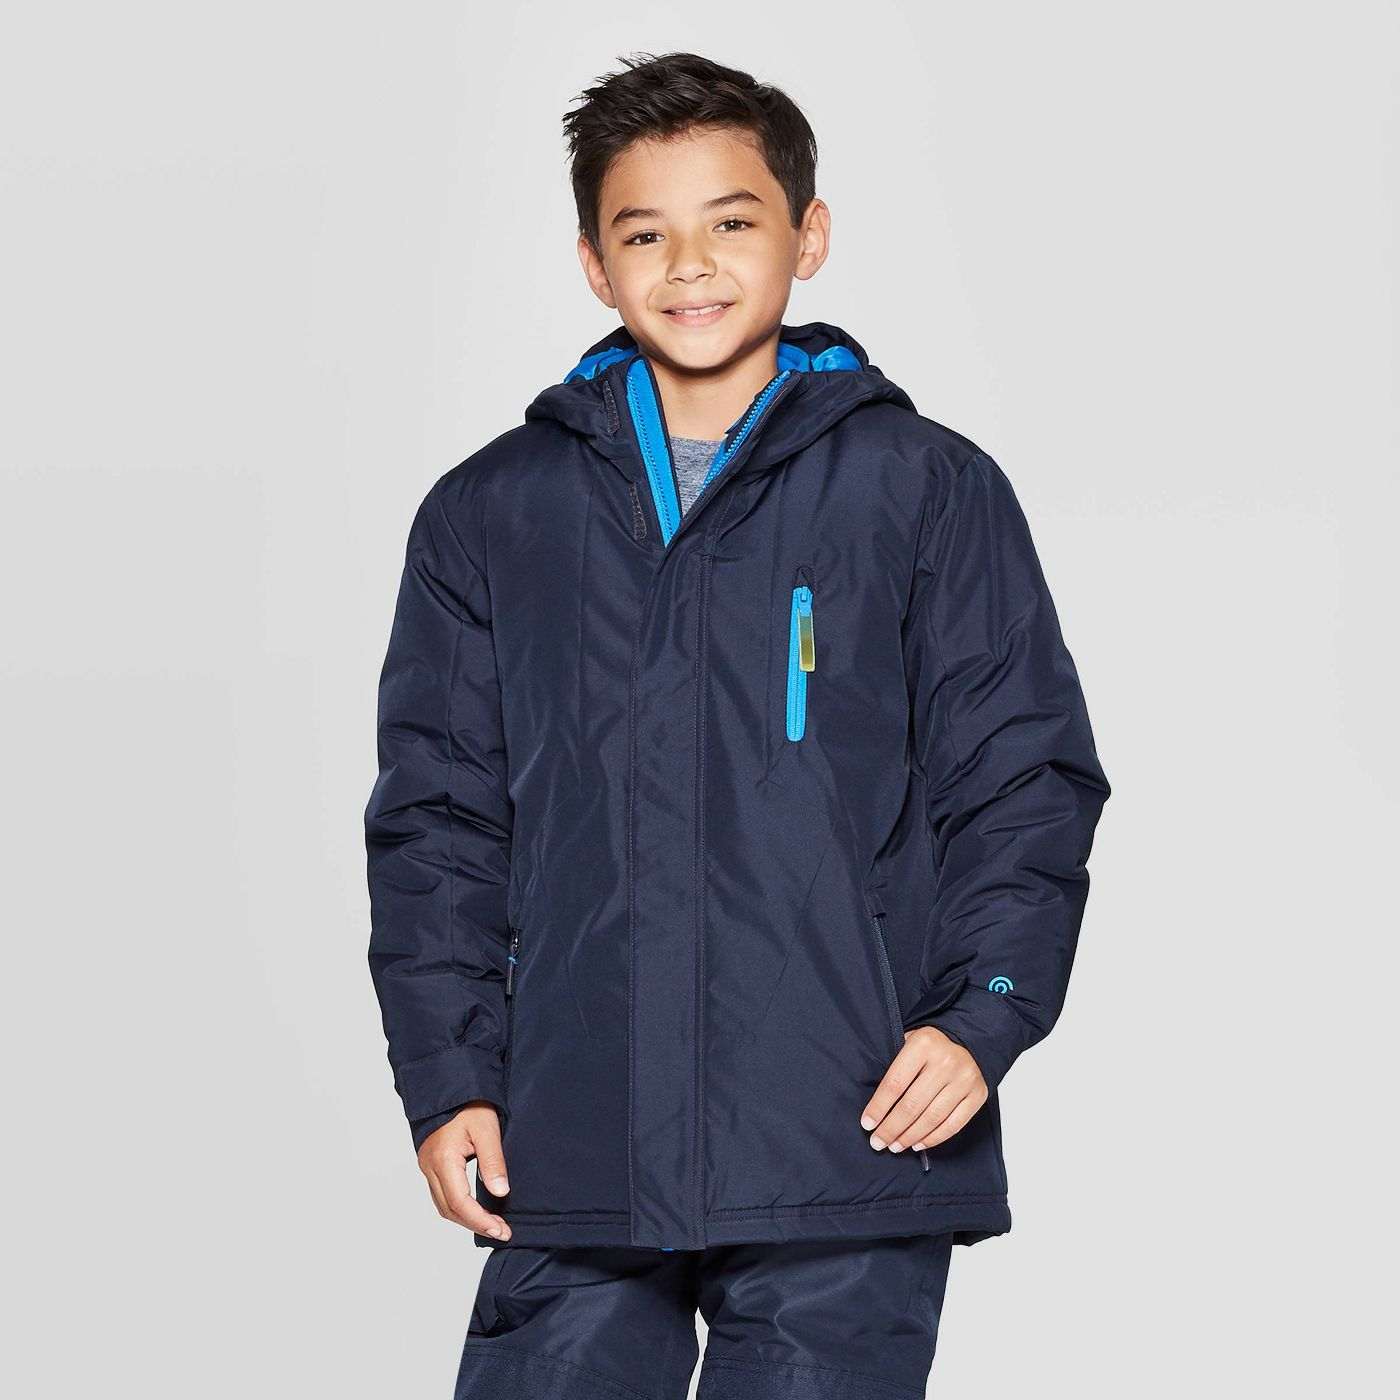 Boys' 3-in-1 System Jacket - C9 Champion® - image 1 of 4